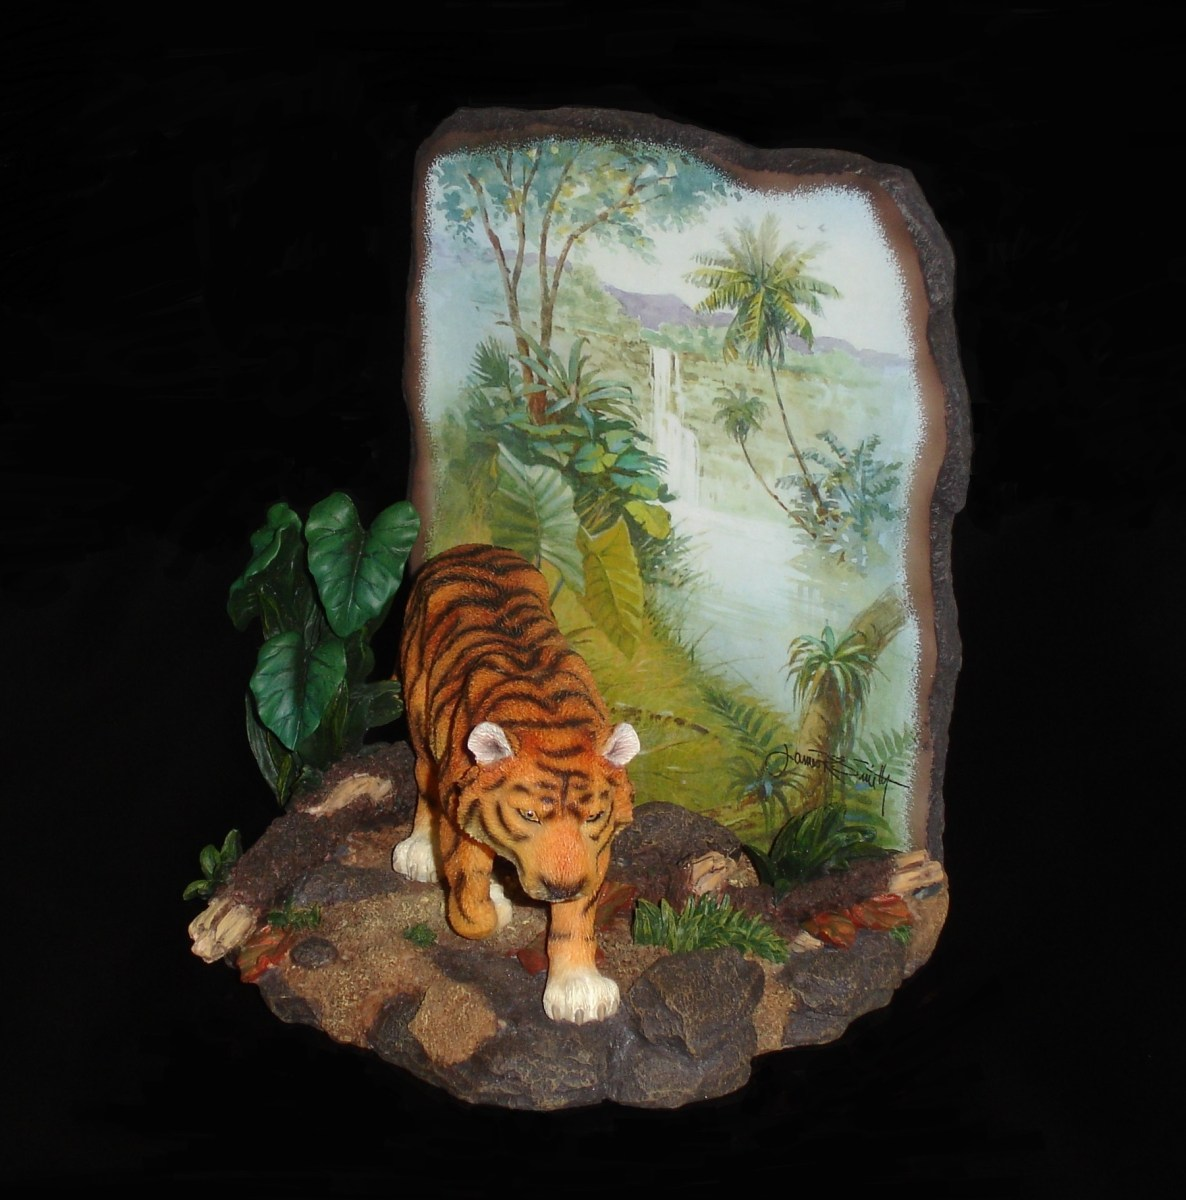 Tiger Sculpture side view